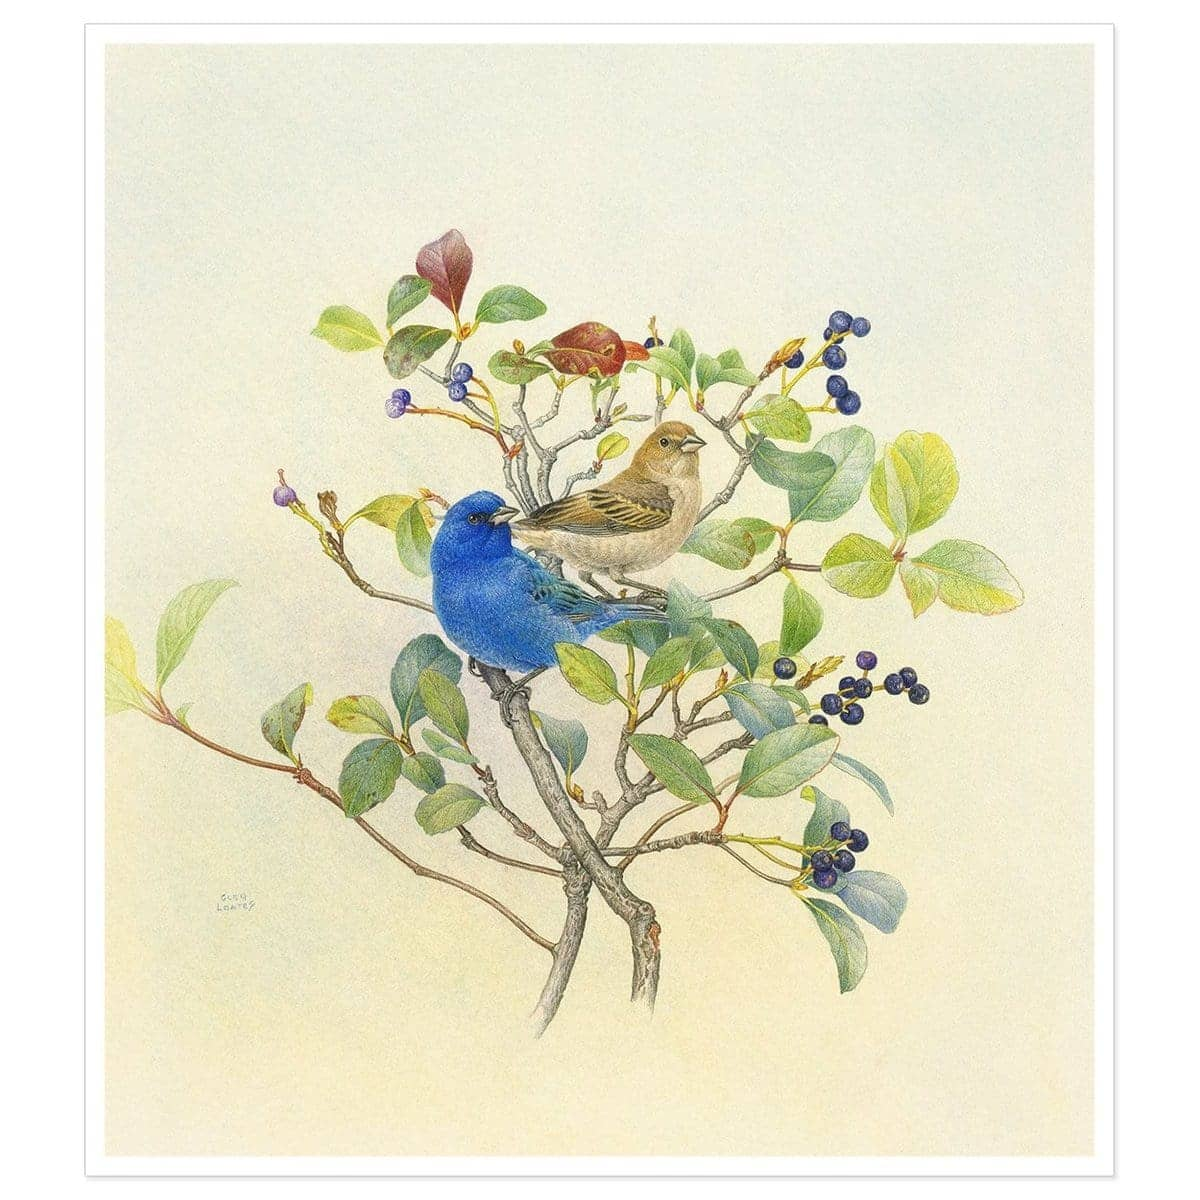 Indigo Buntings - Art Print by Glen Loates from the Glen Loates Store